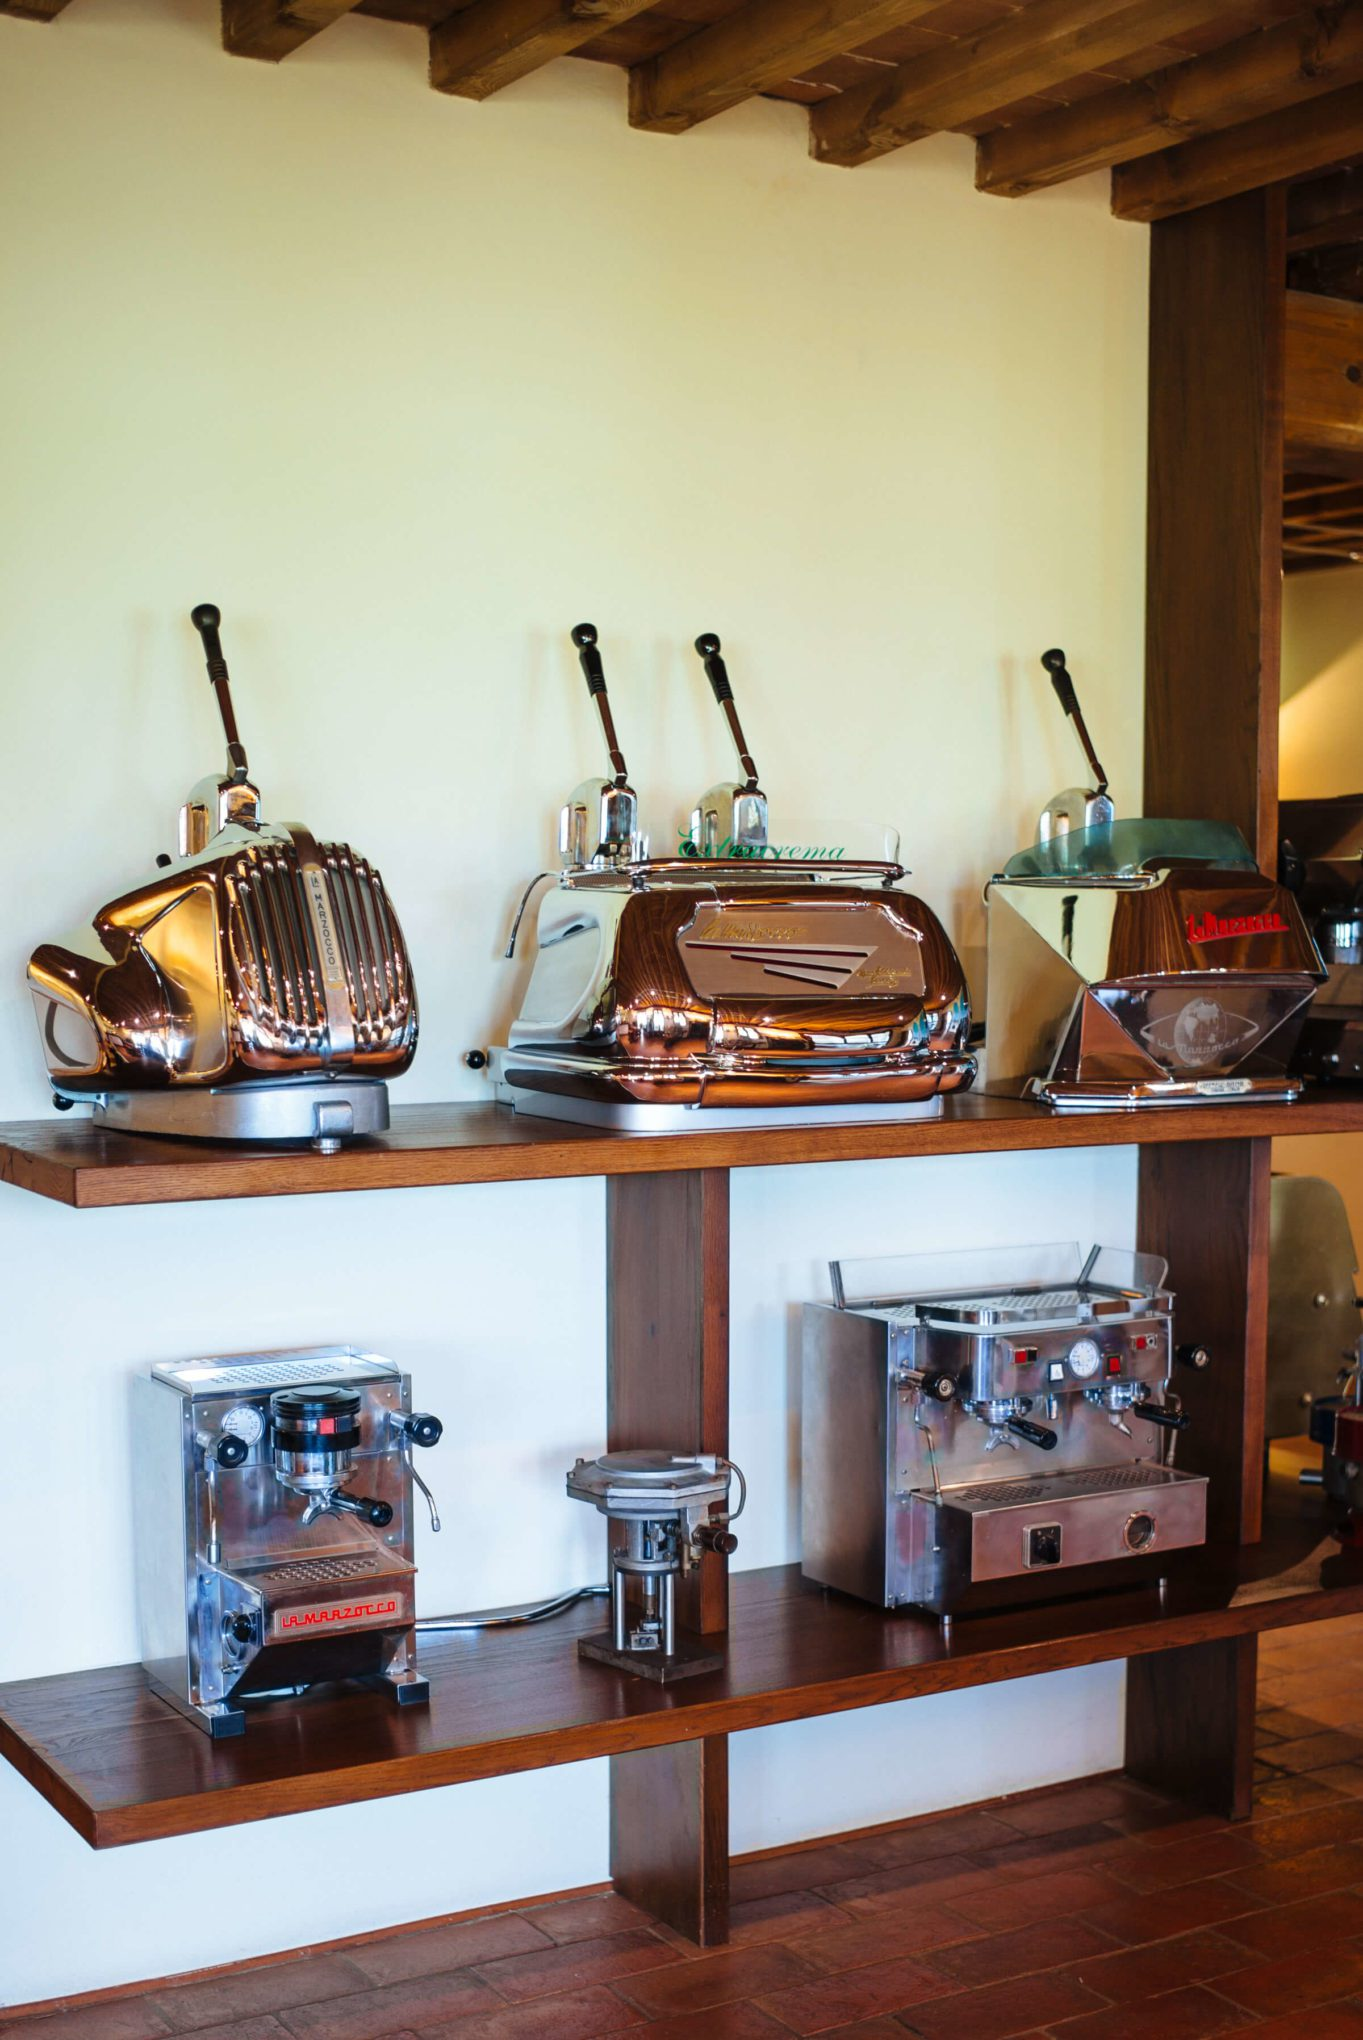 Older models of La Marzocco Factory Tour in Florence, The Taste Edit